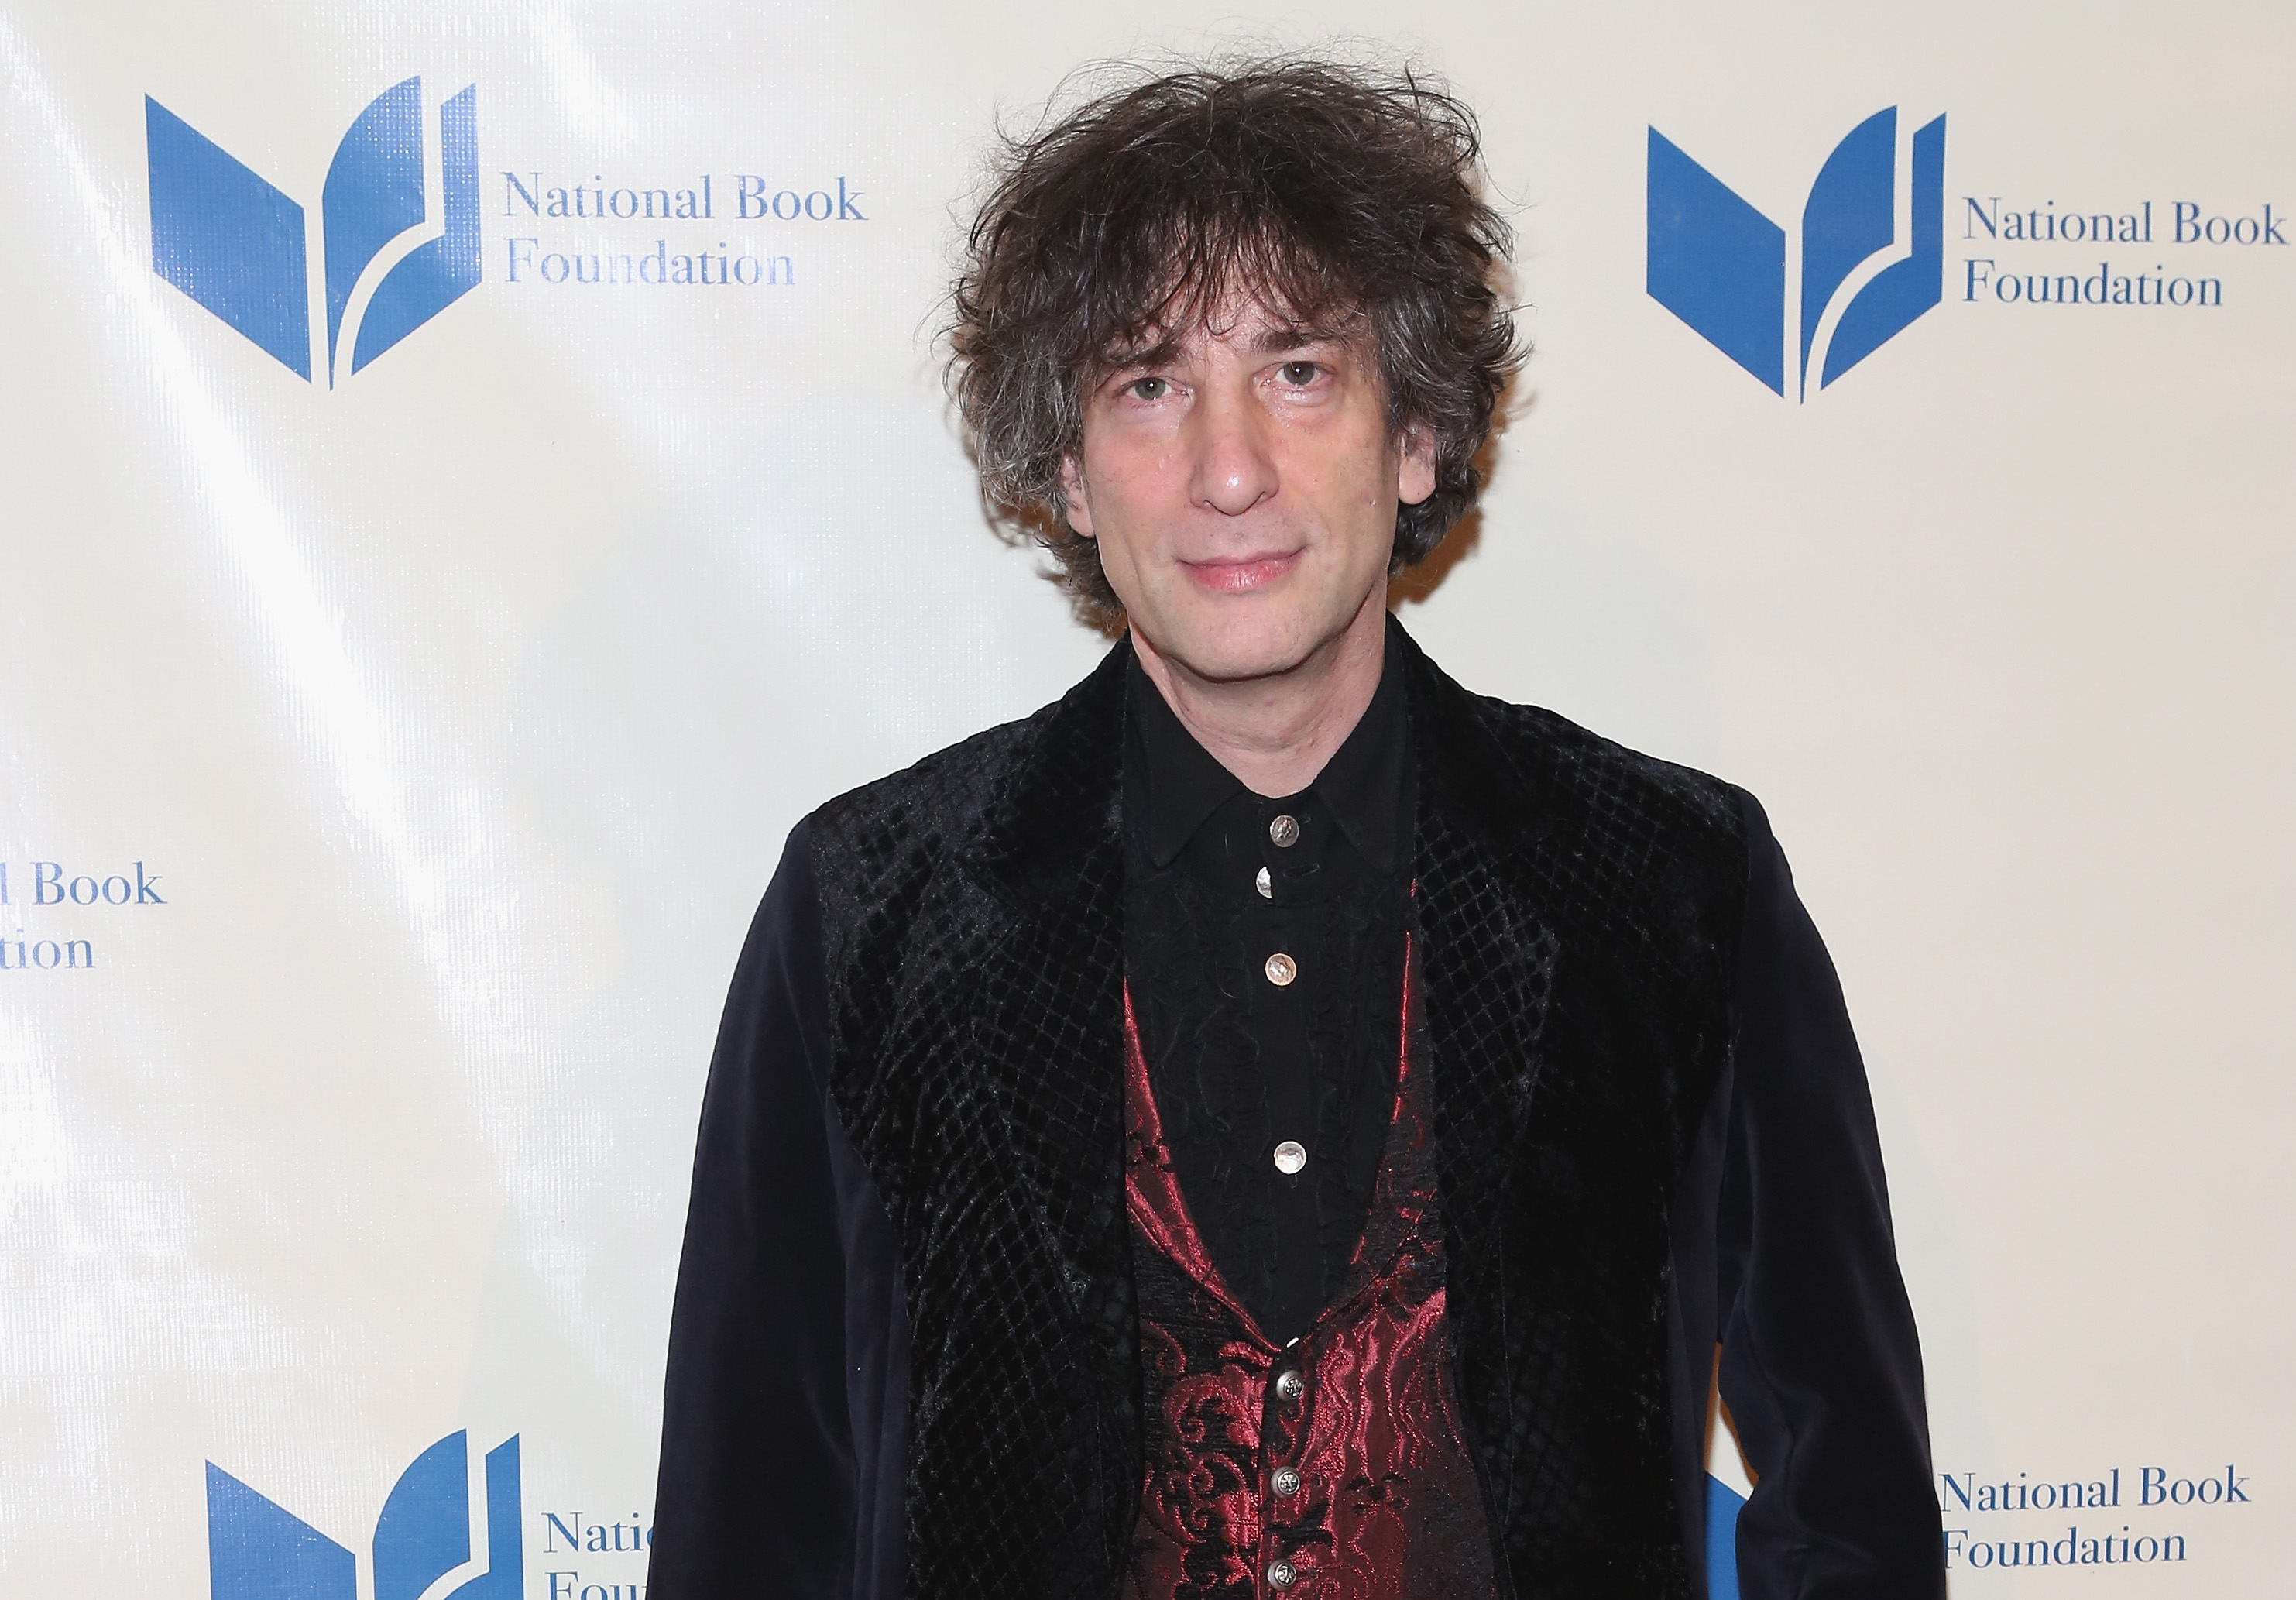 Pictures Of Neil Gaiman